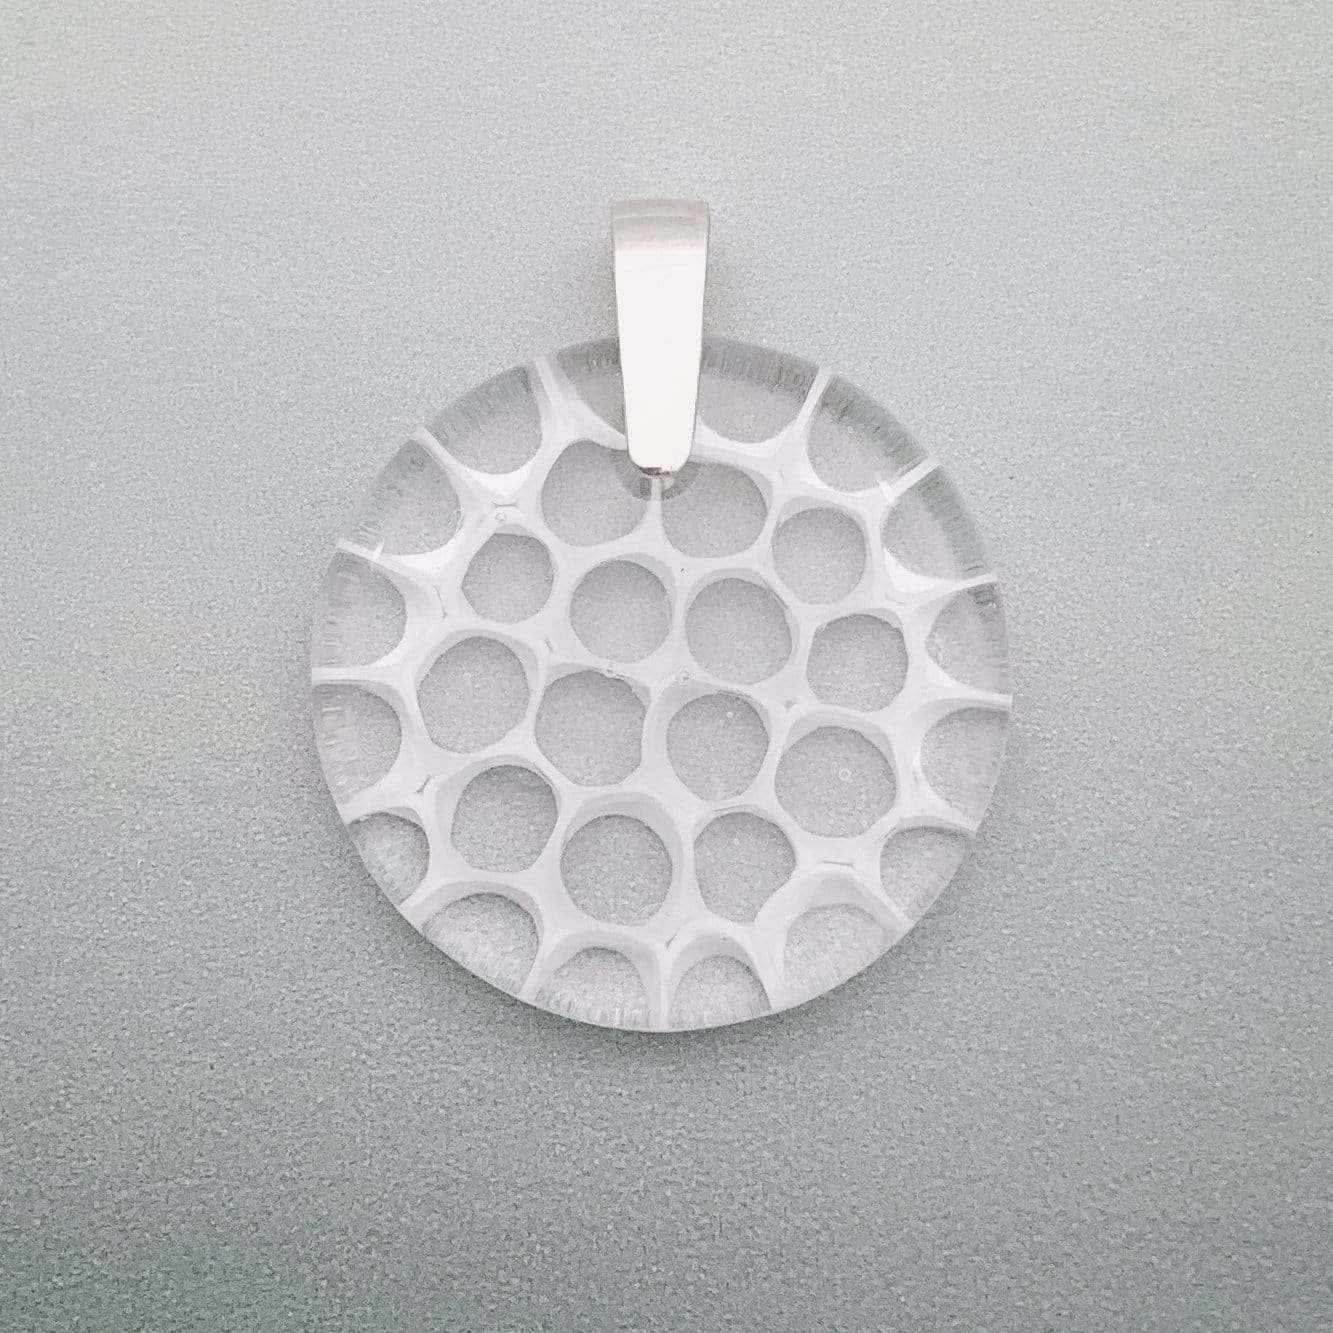 Fused murrini glass 35mm pendant in white & transparent cells